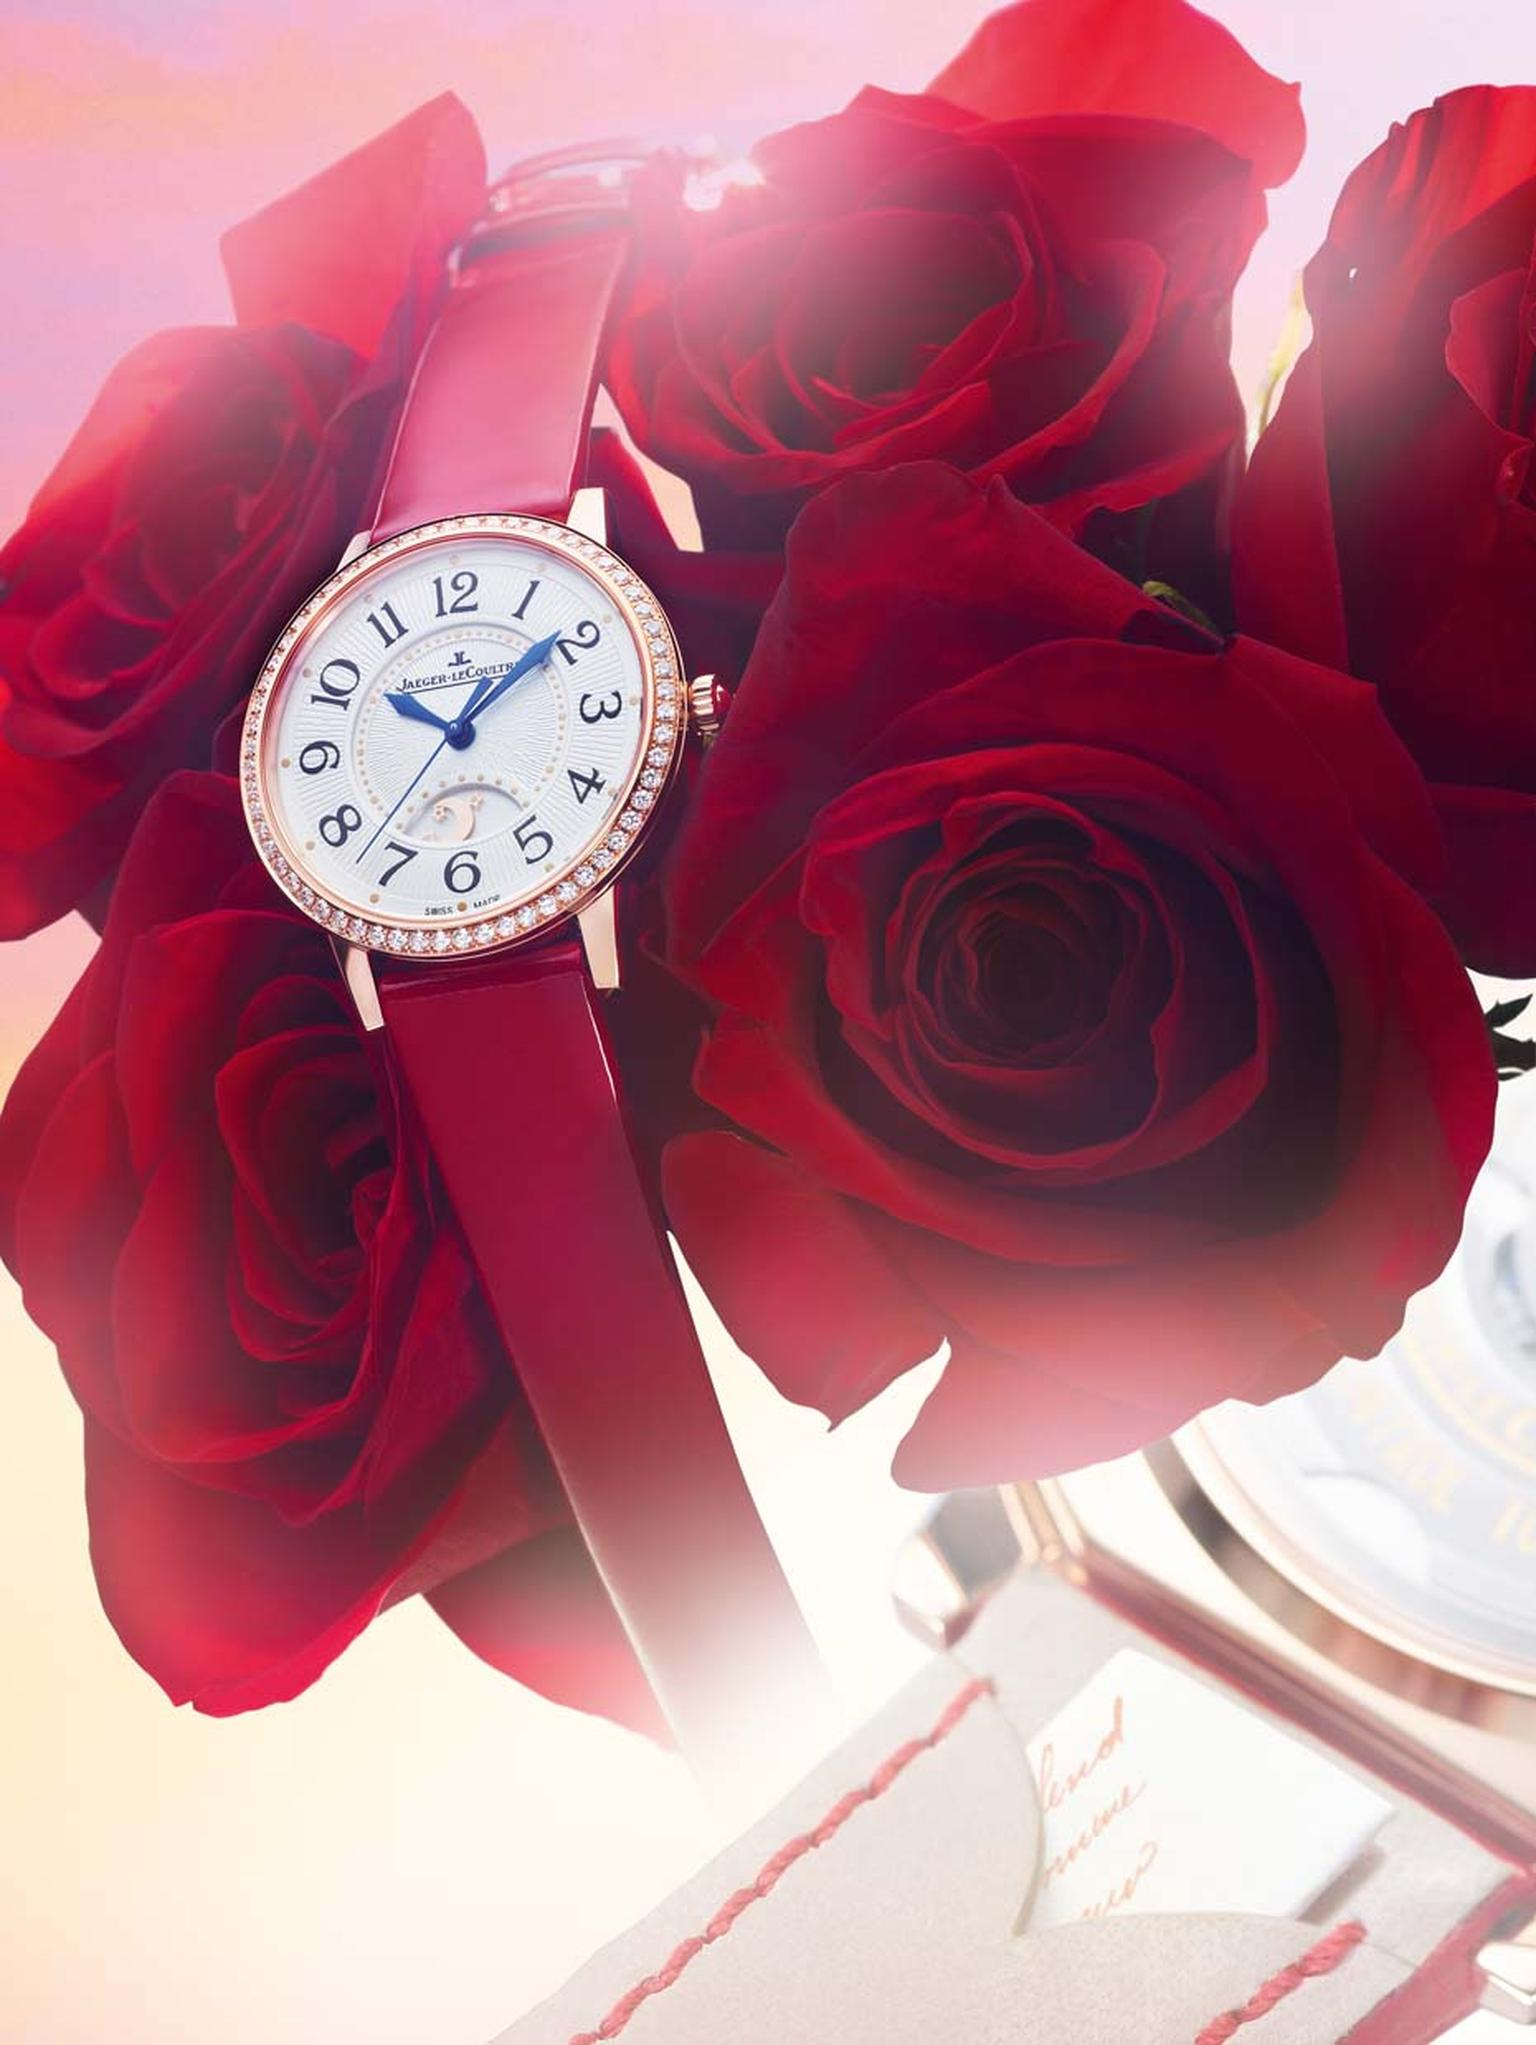 Jaeger-LeCoultre's limited edition Rendez-Vous. PS. I Love You